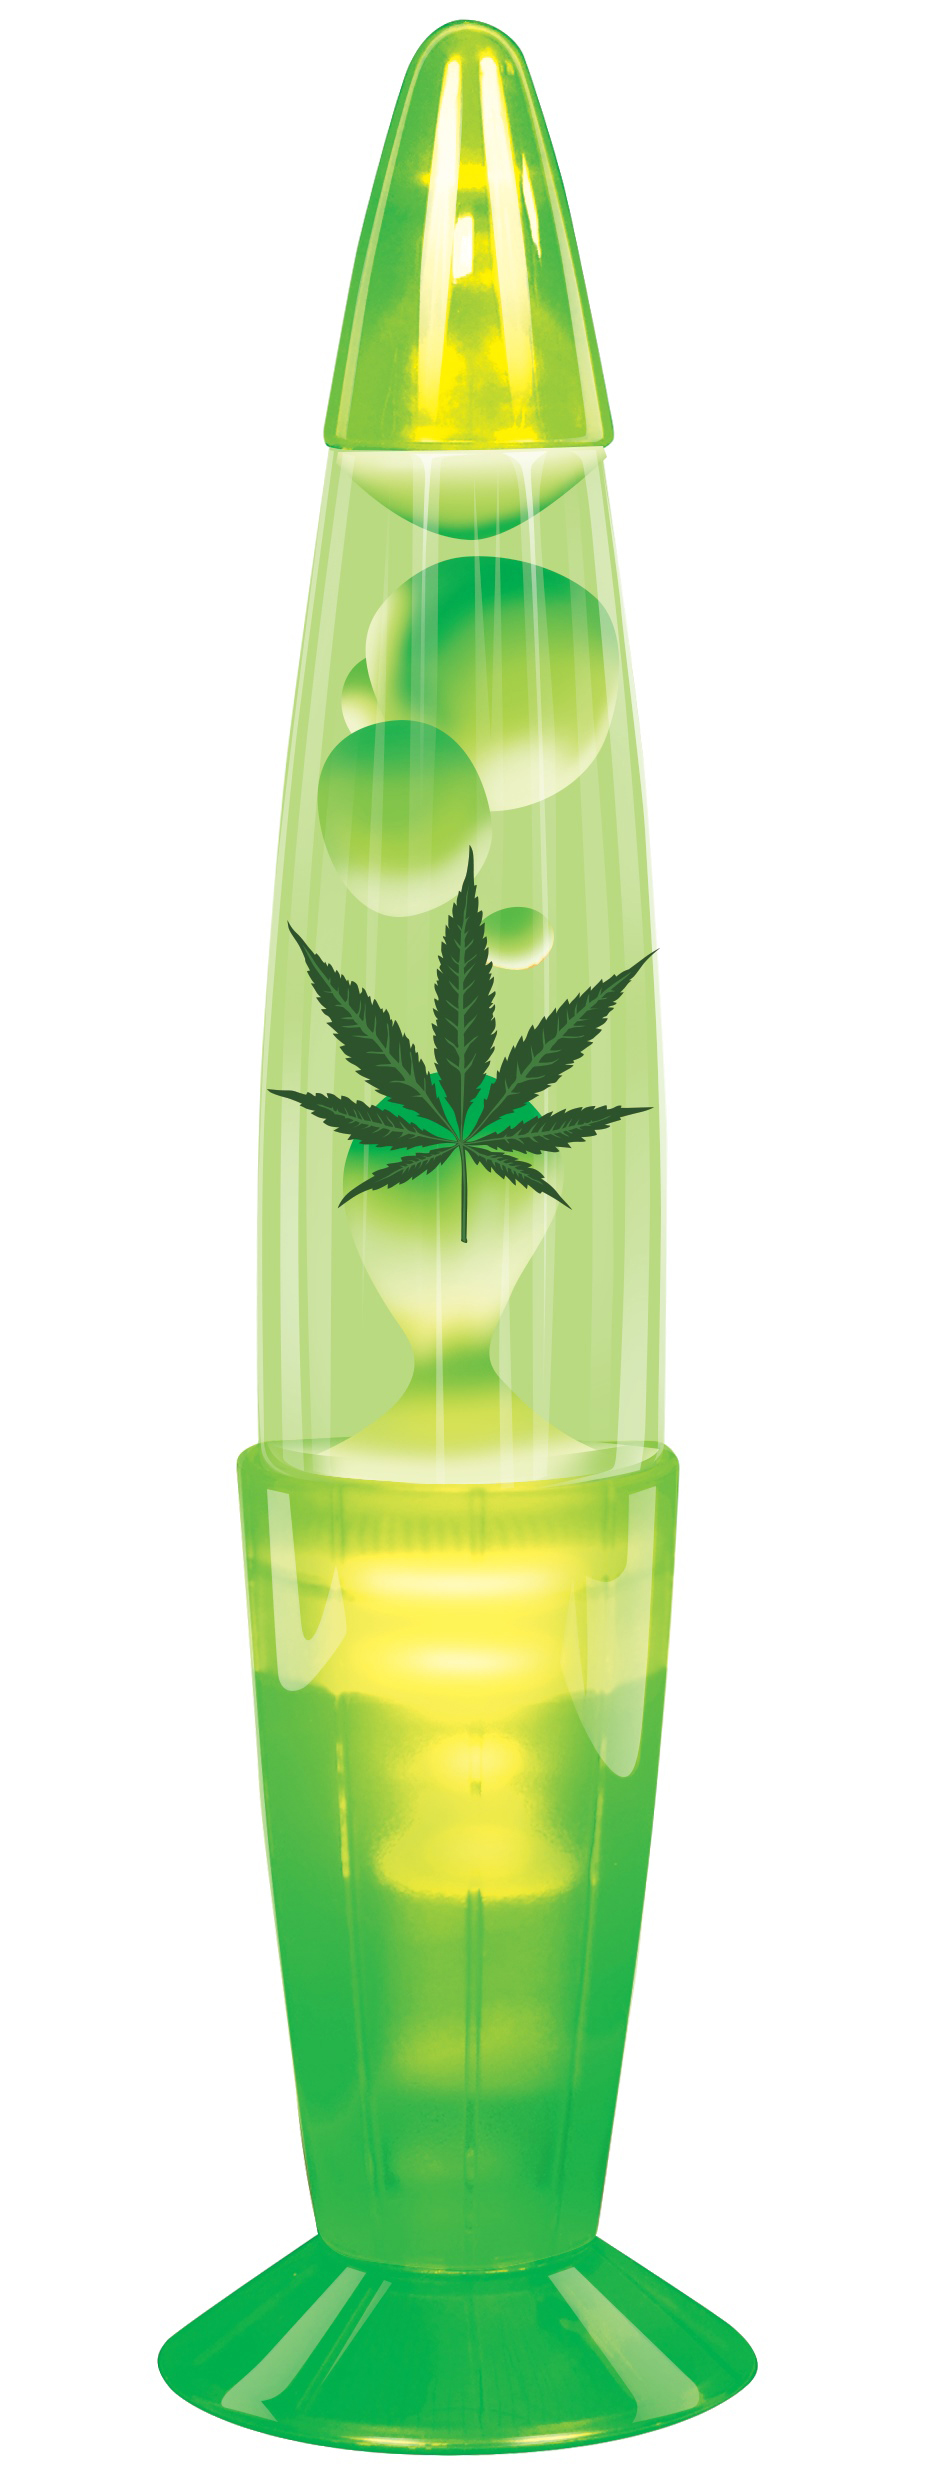 Forum Stoner Hemp Weed Party Light Decoration Lava Lamp, Green